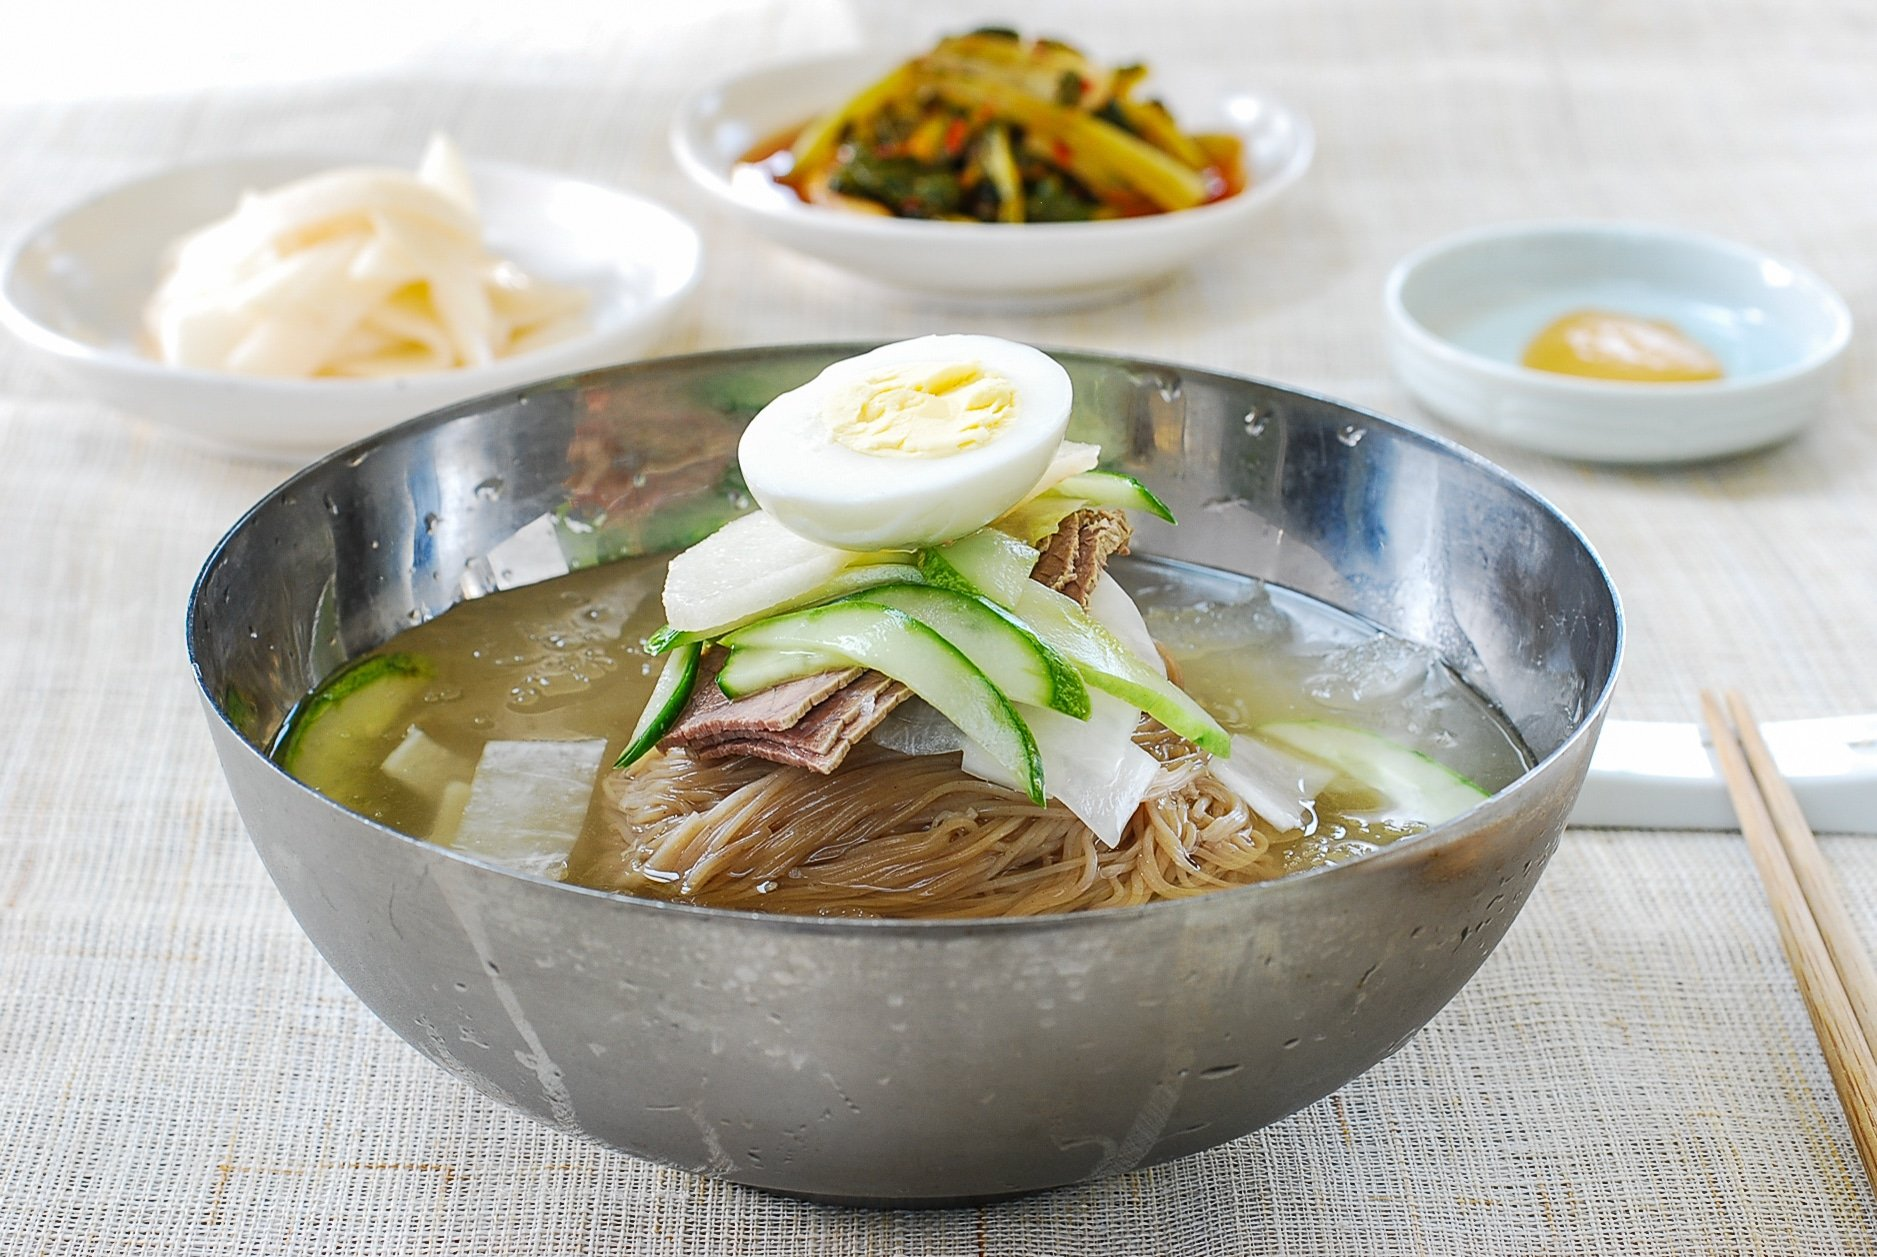 DSC 0061 2 - Naengmyeon (Cold Noodles)